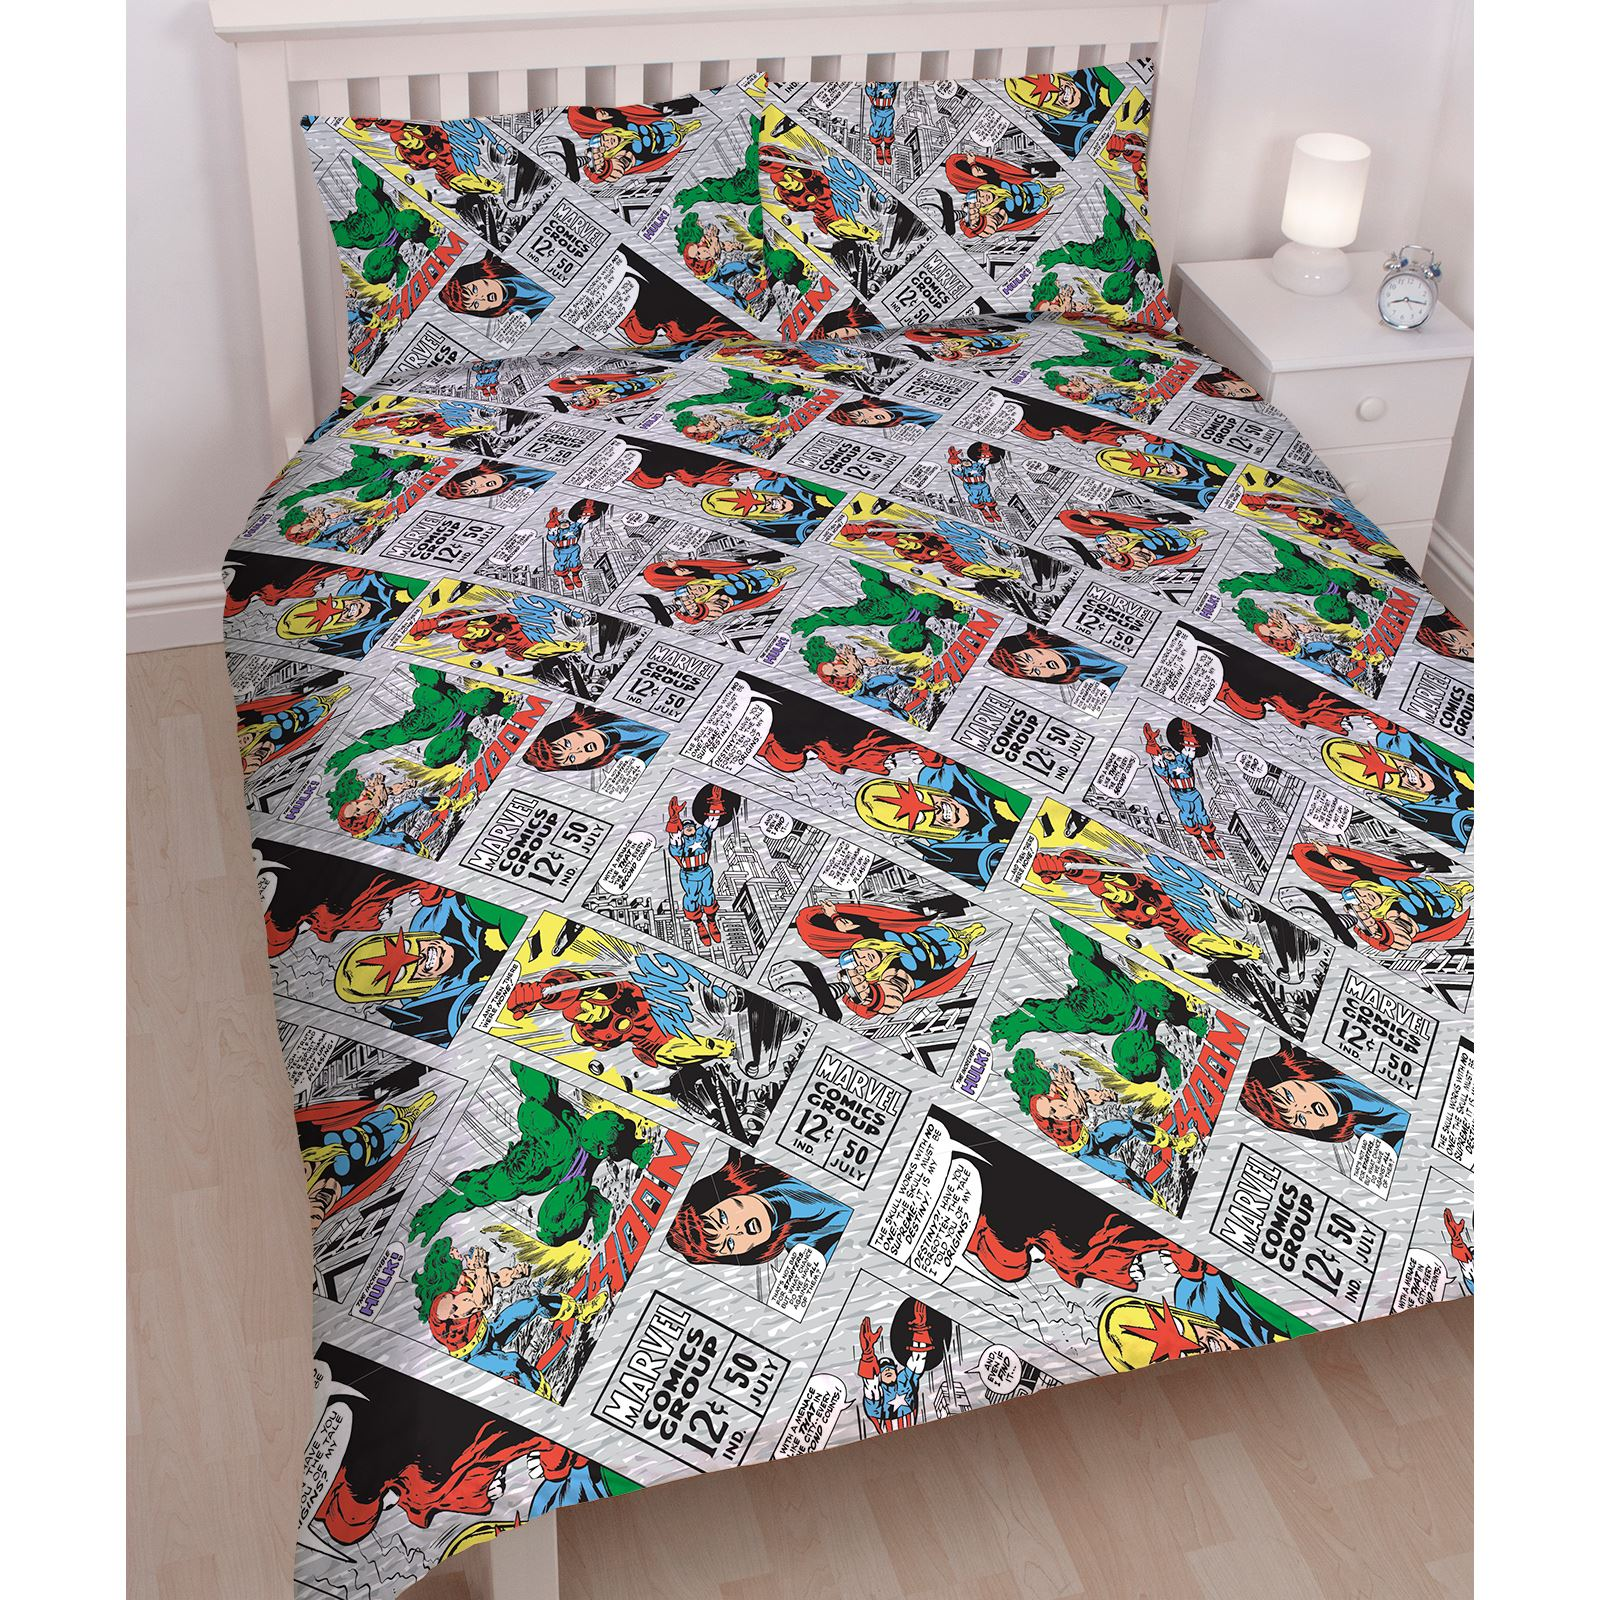 MARVEL COMICS RETRO DOUBLE DUVET COVER SET REVERSIBLE KIDS BEDDING ... : marvel quilt cover - Adamdwight.com